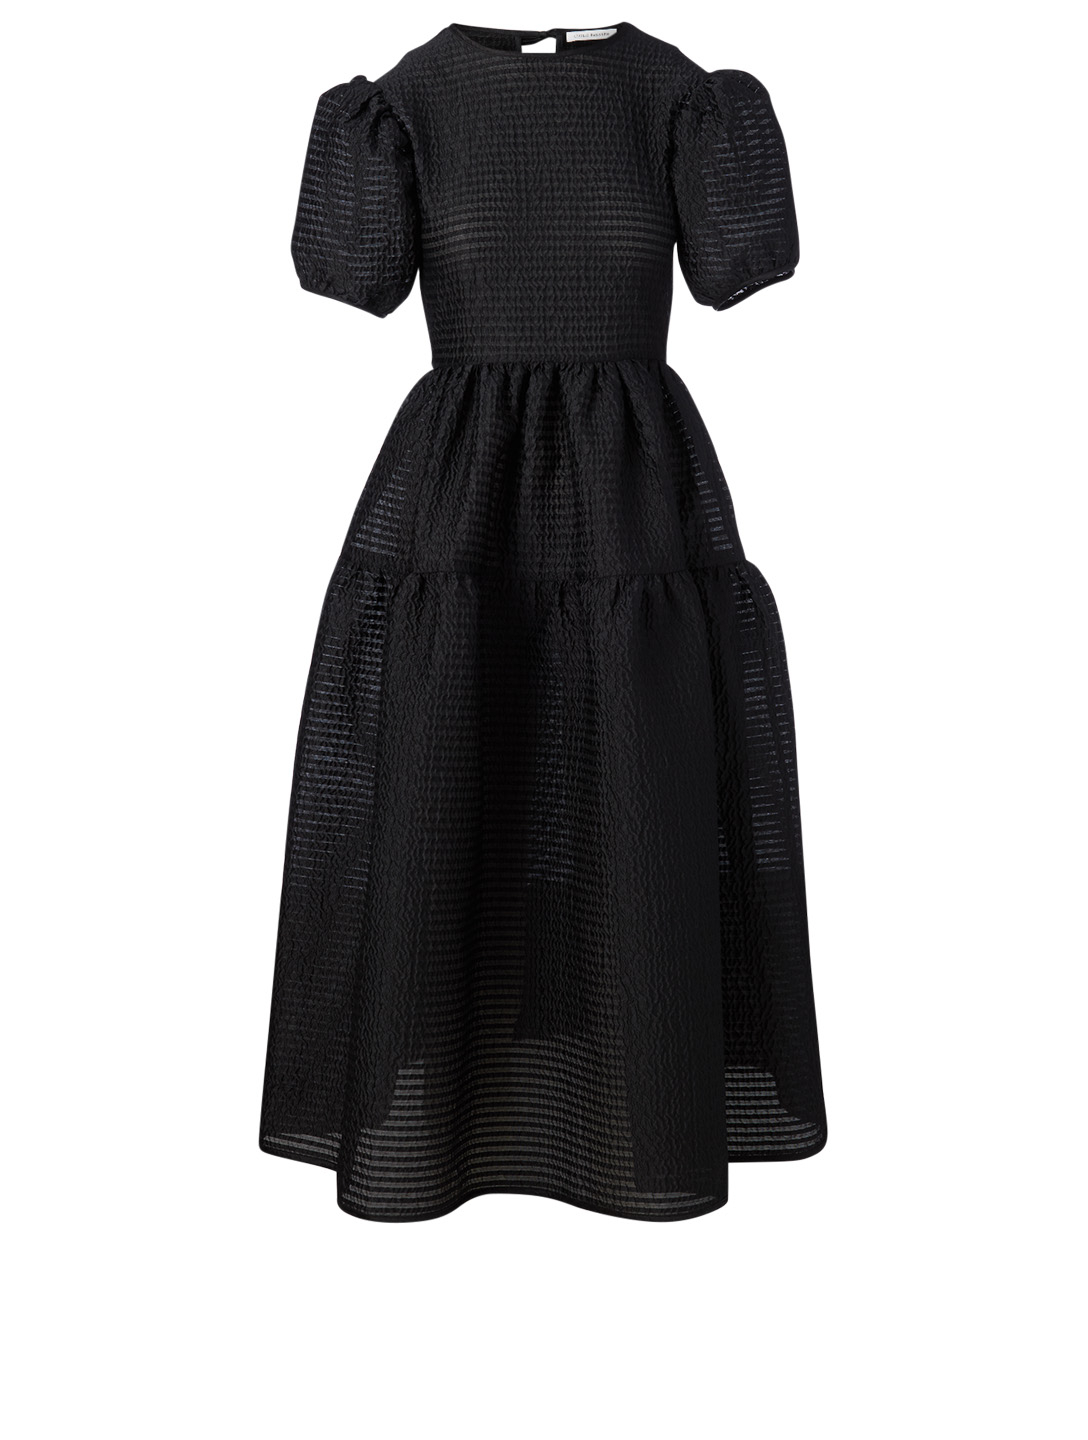 CECILIE BAHNSEN Katja Seersucker Midi Dress Women's Black